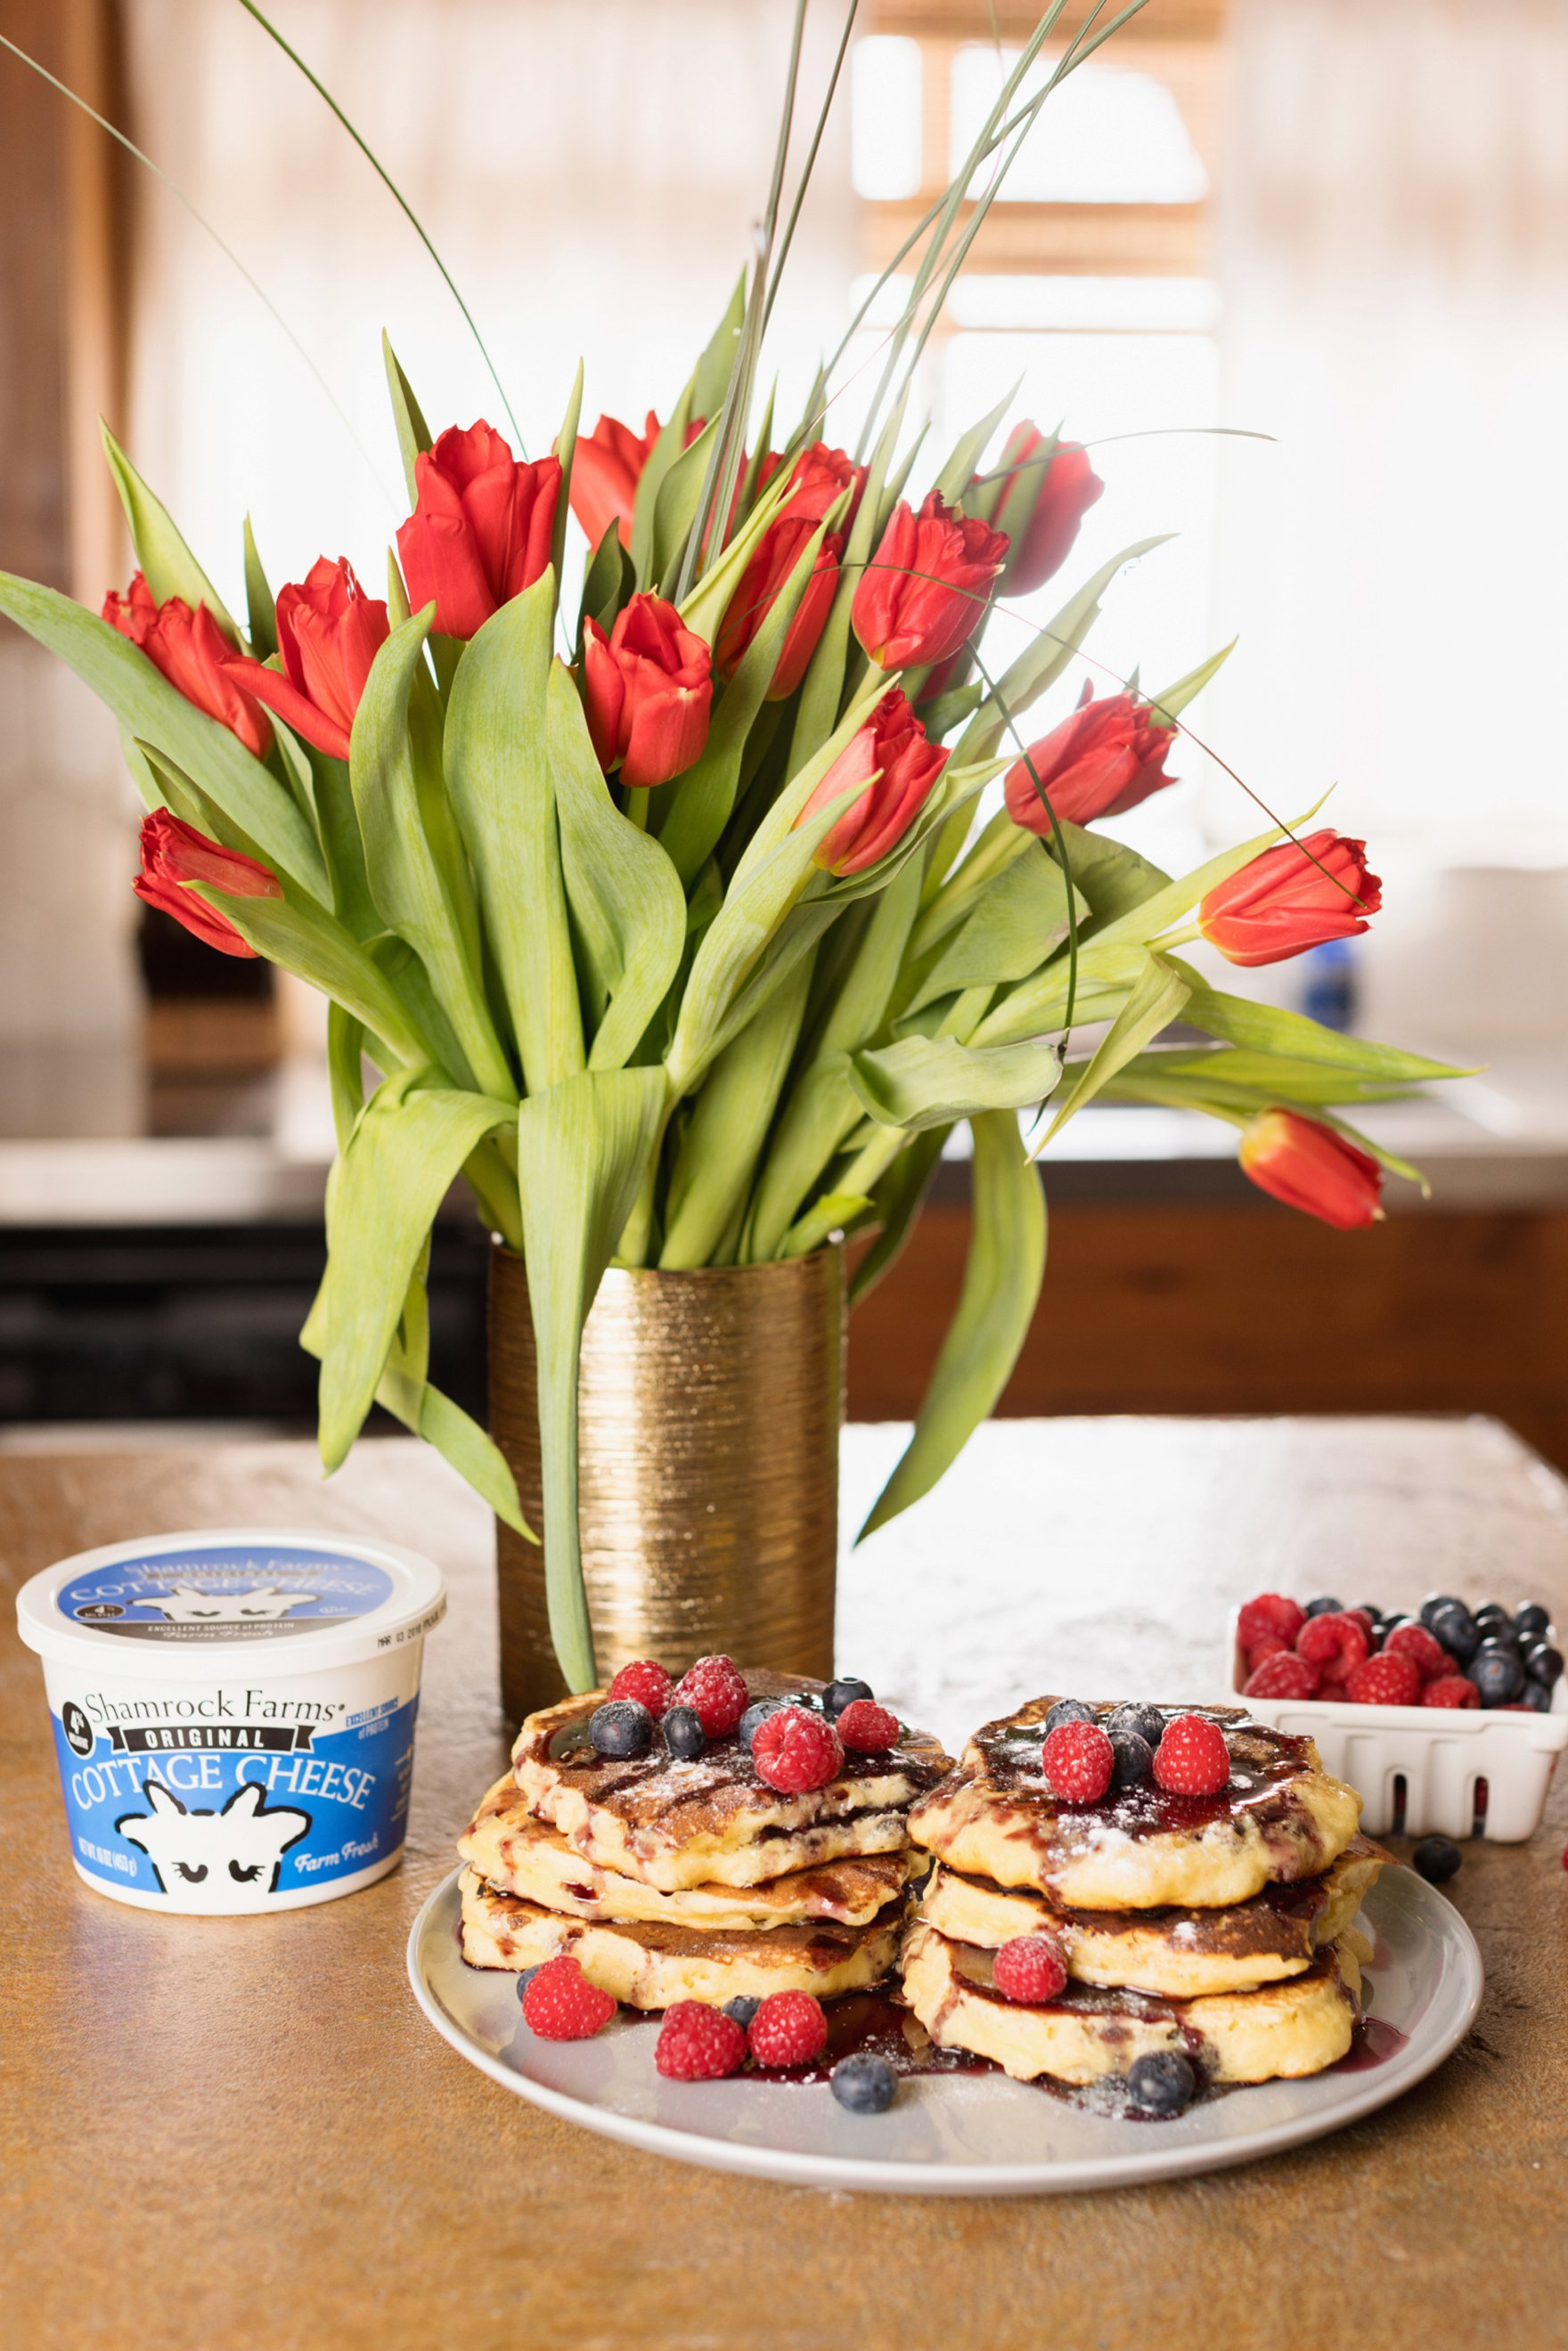 easy protein pancake recipe no protein powder use cottage cheese instead - so easy! Featuring shamrock Farms cottage cheese.